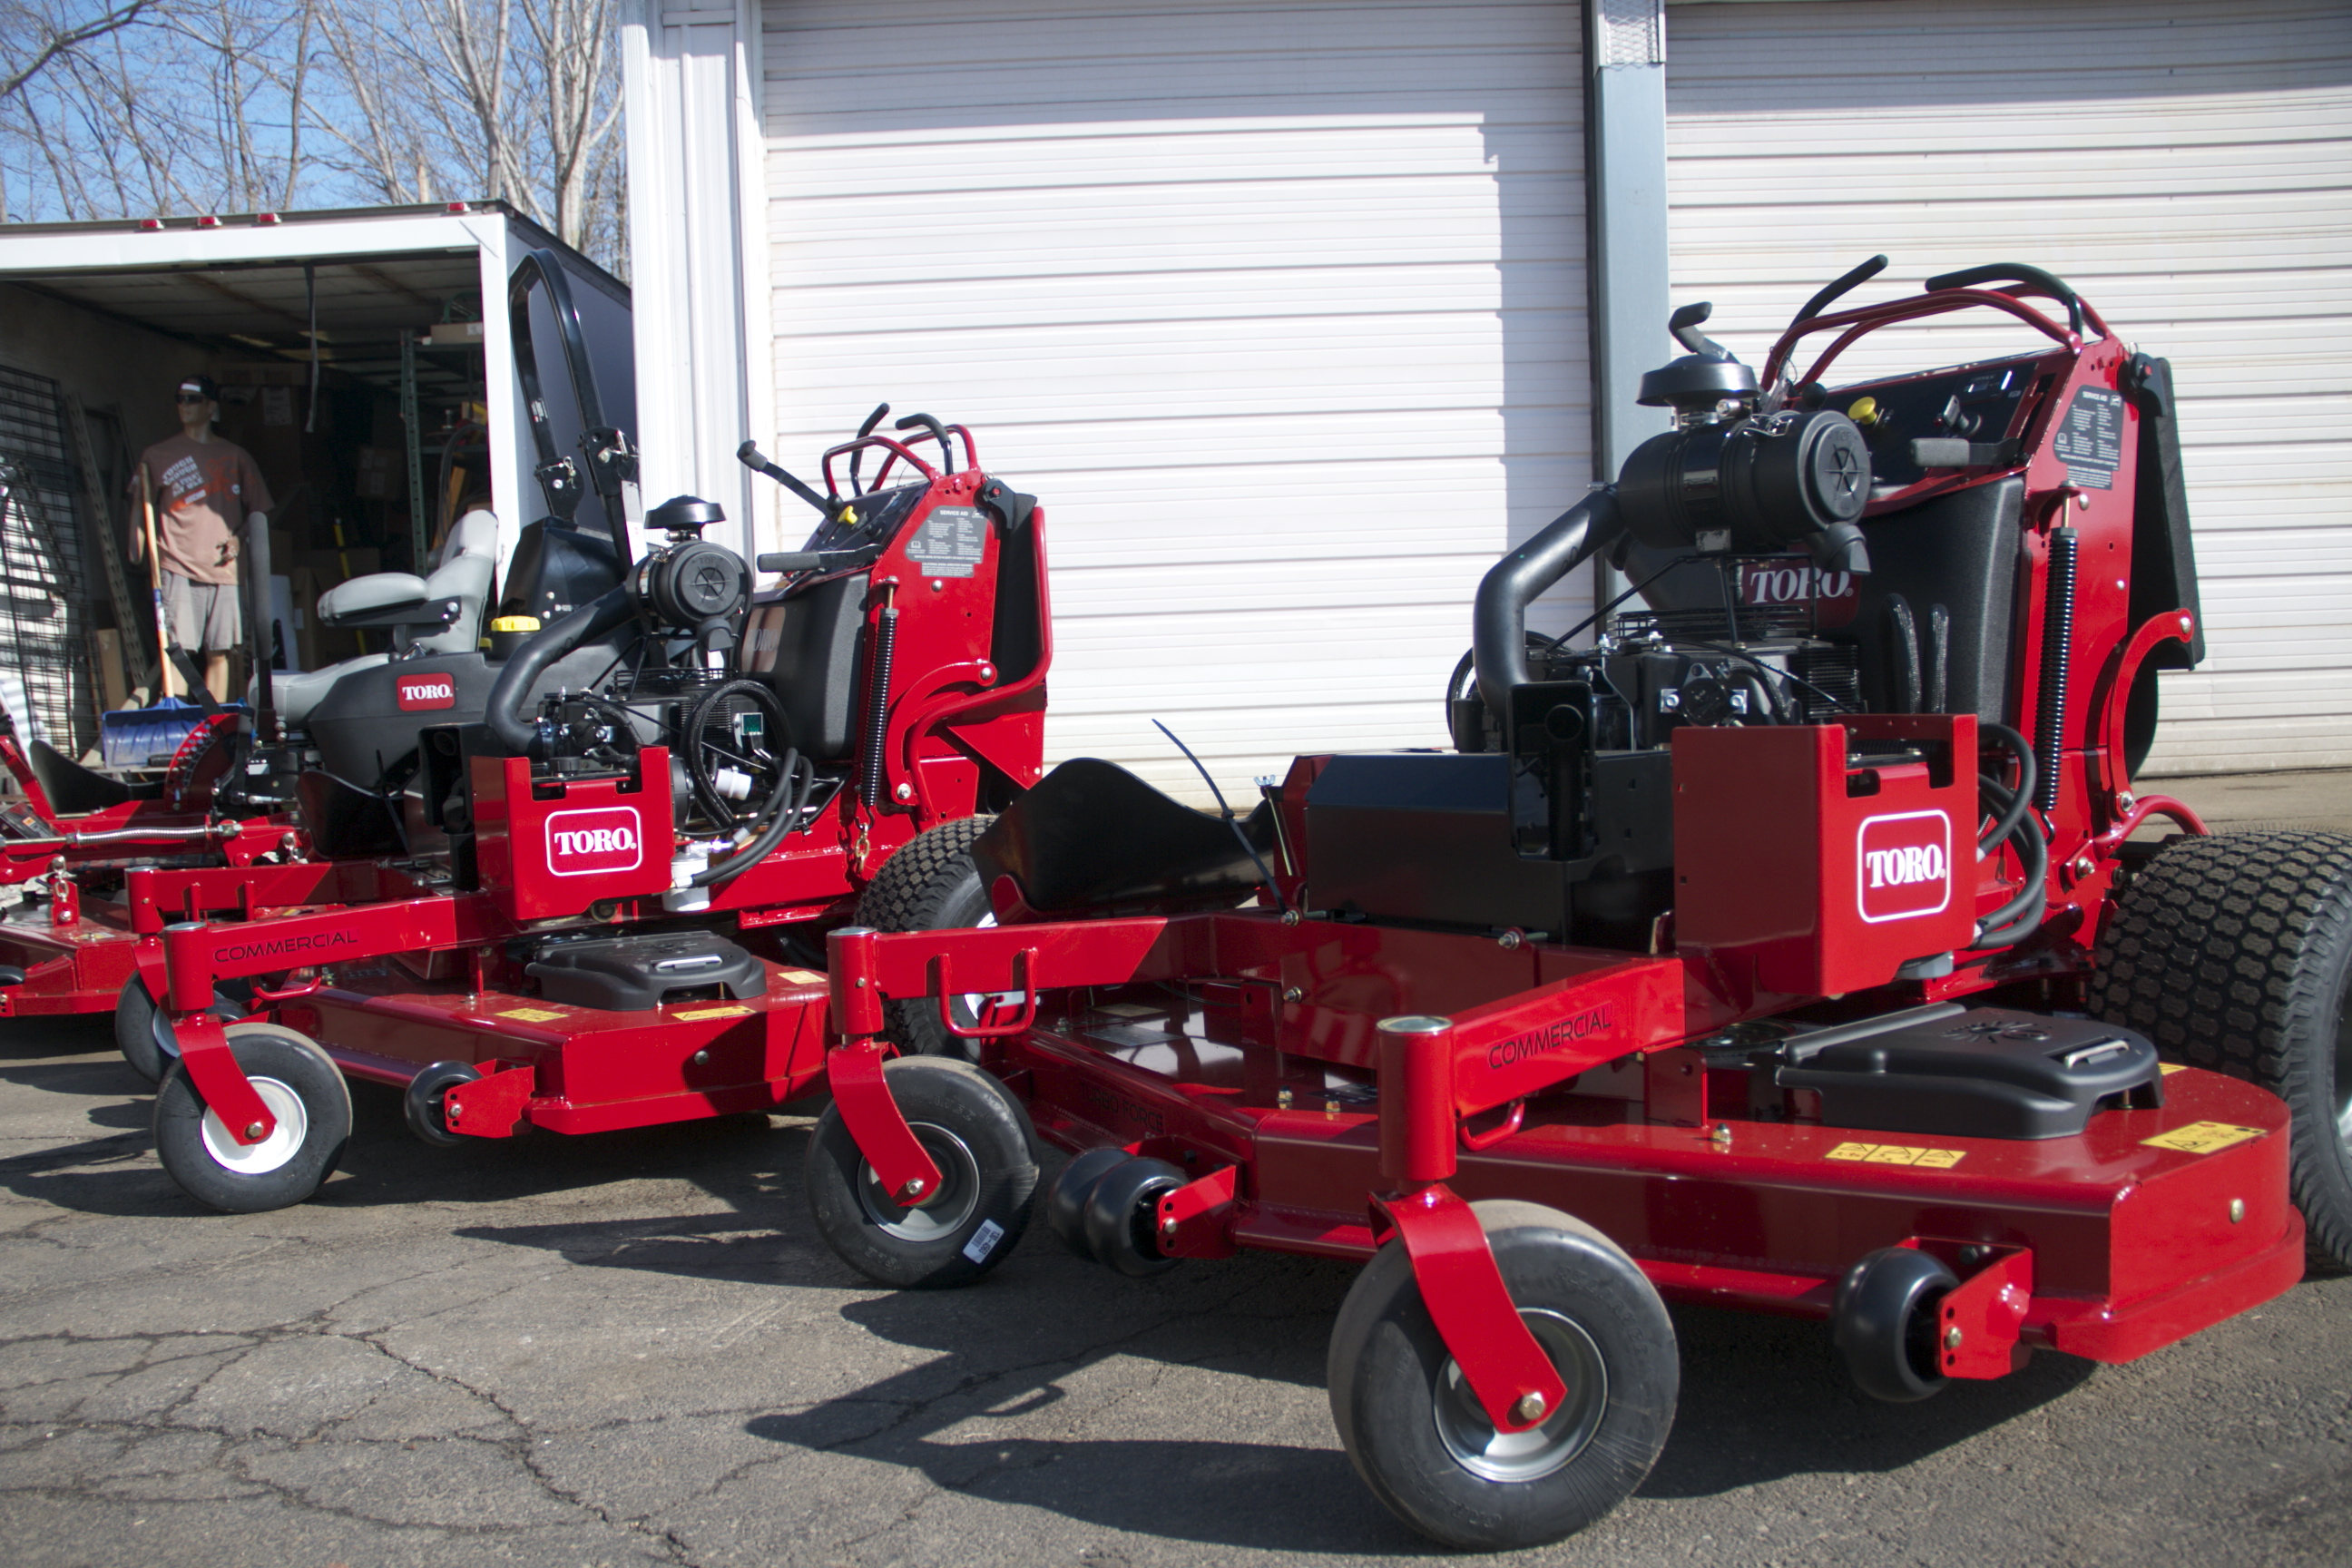 Toro Stand on Mowers